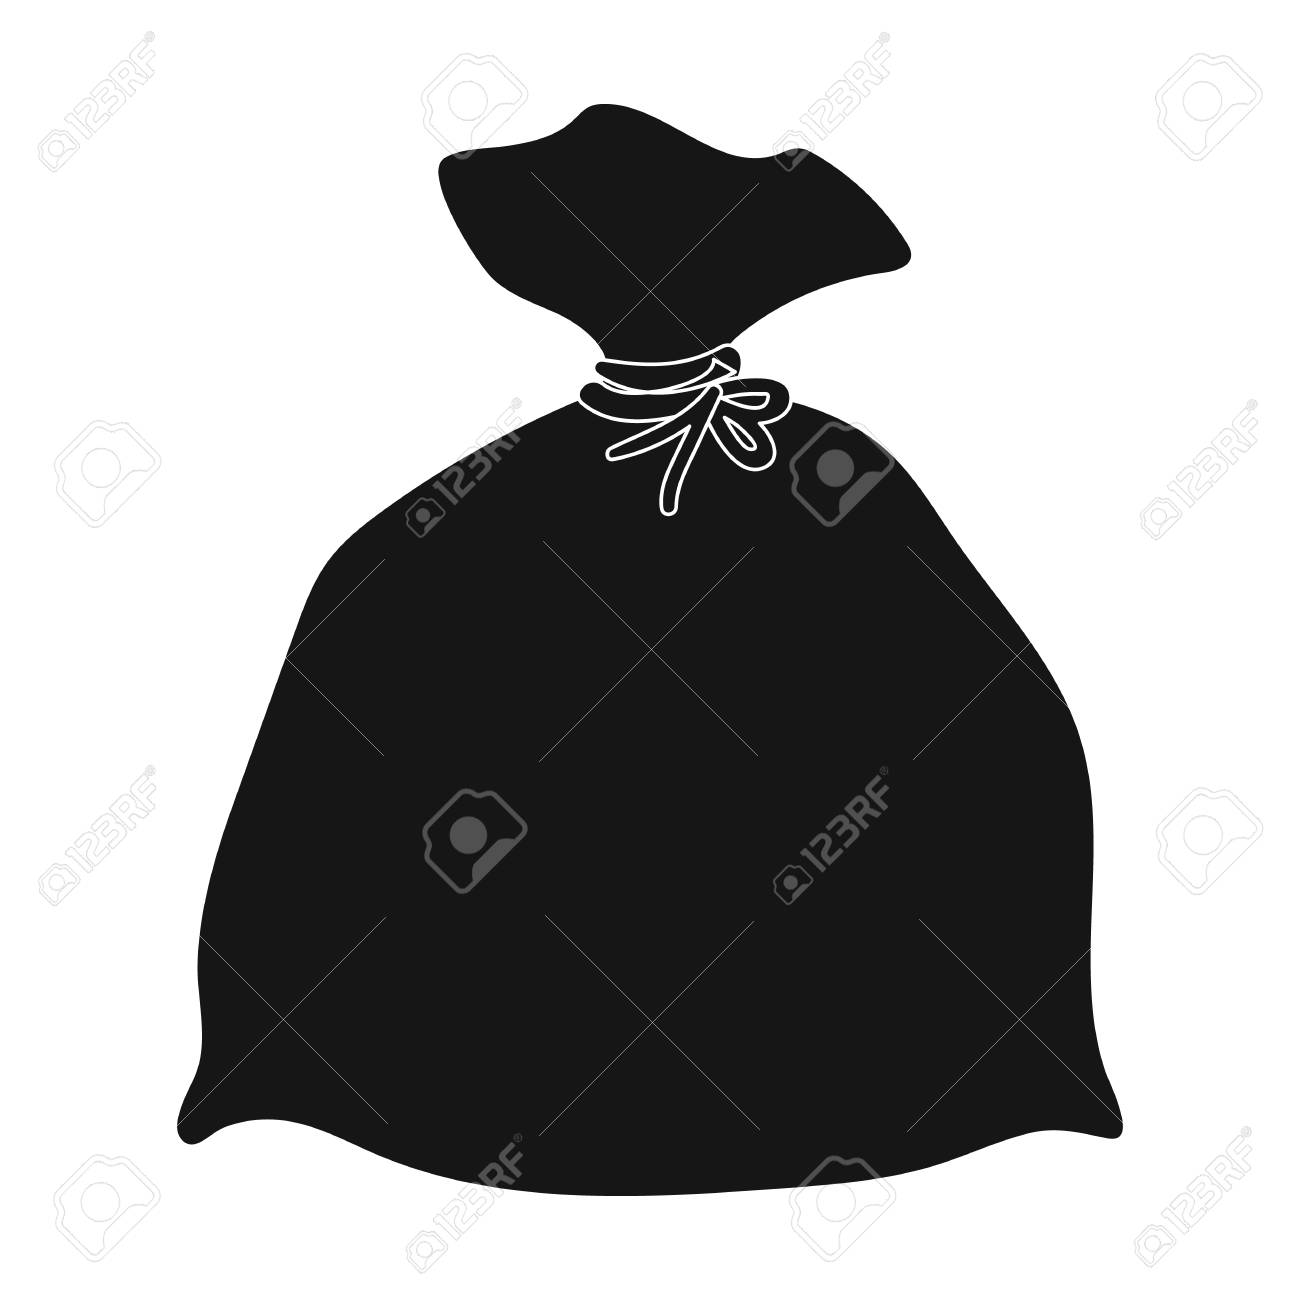 Garbage bag icon in black style isolated on white background. Cleaning symbol stock vector illustration. - 71416481